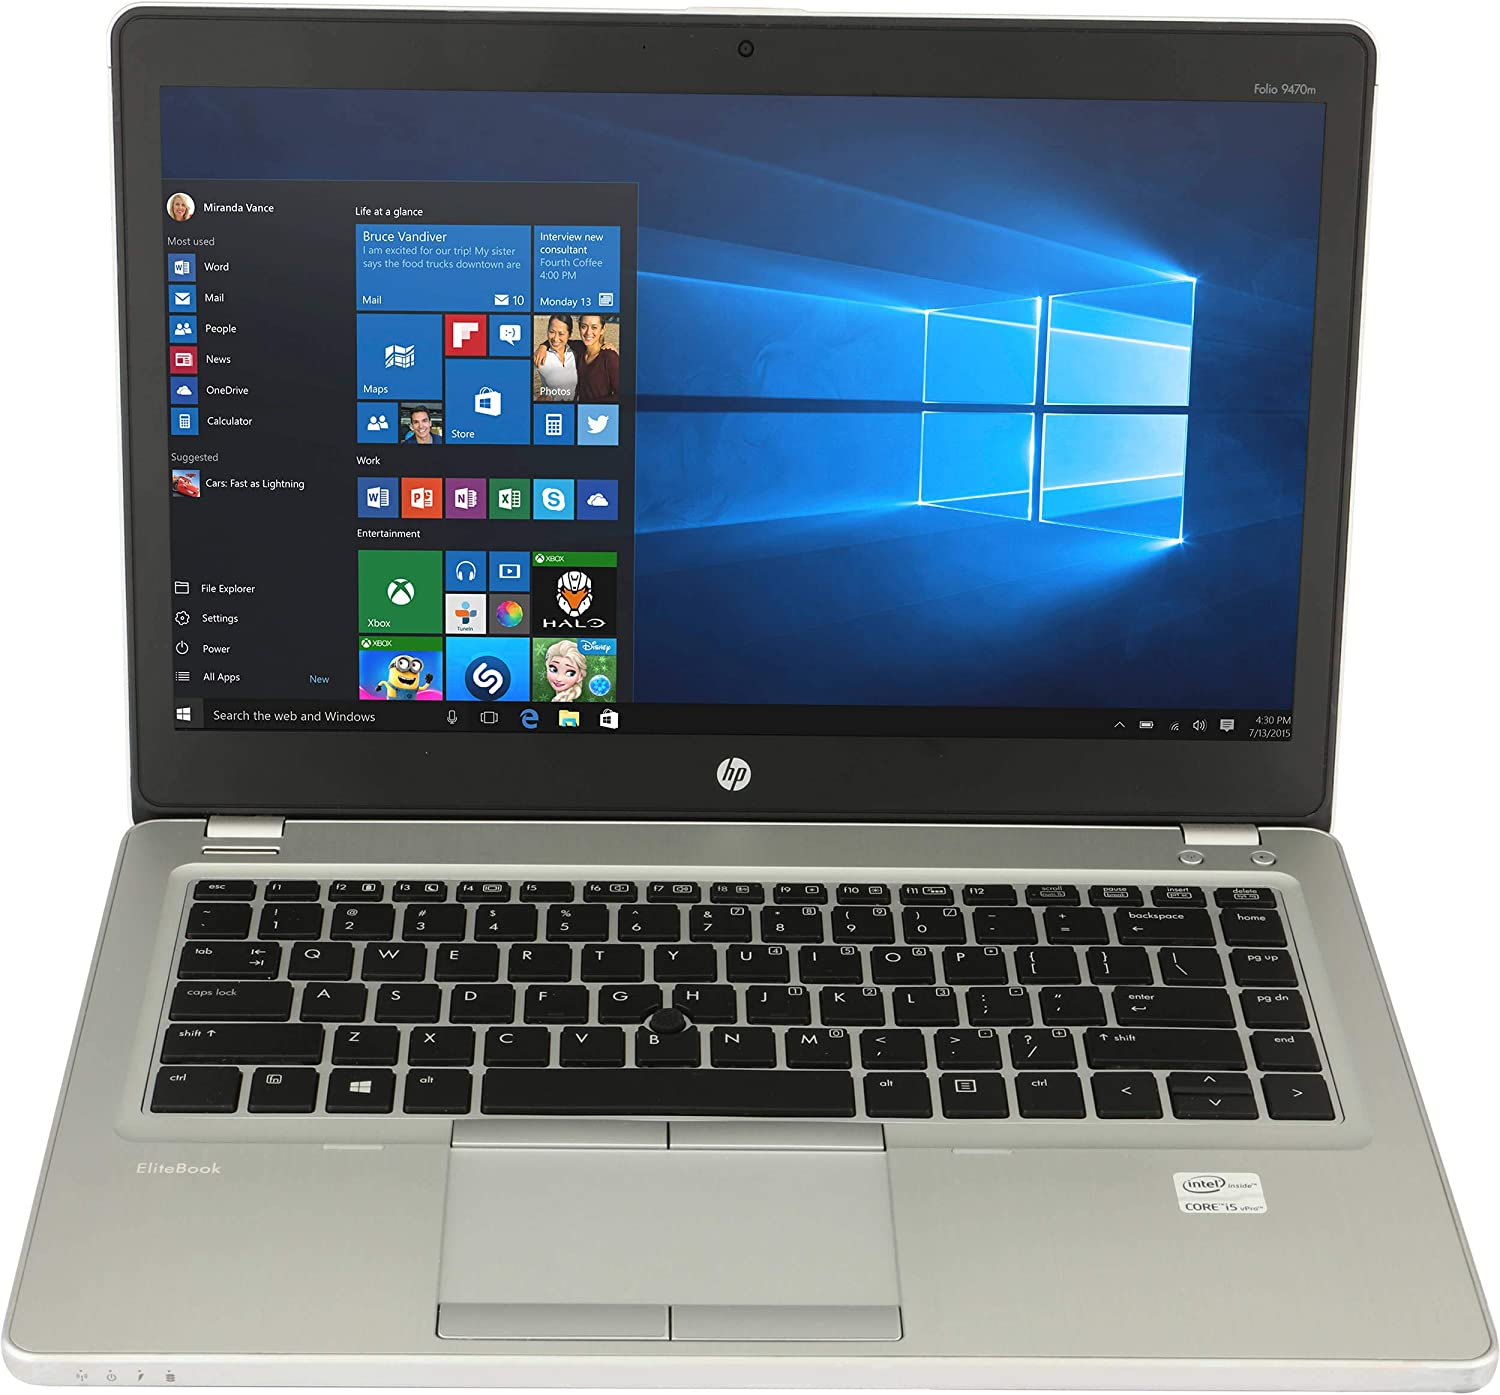 "HP ELITEBOOK Folio 9470M i5-3427U 1.8GHZ 14"" 8GB 320 HDD DVDRW Win 10 PRO (Renewed)"